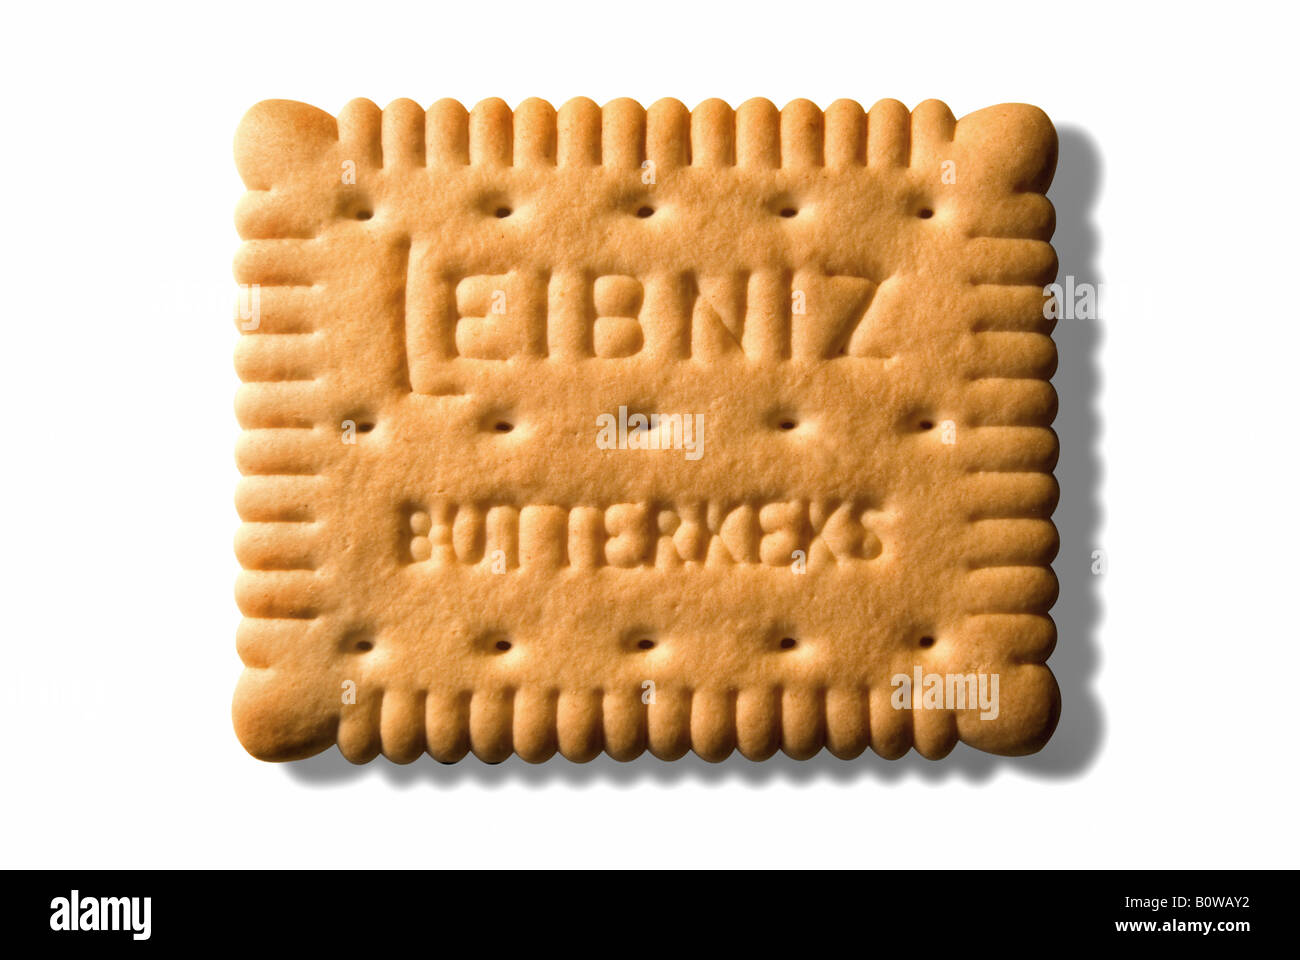 Biscuit Brand Stock Photos Amp Biscuit Brand Stock Images